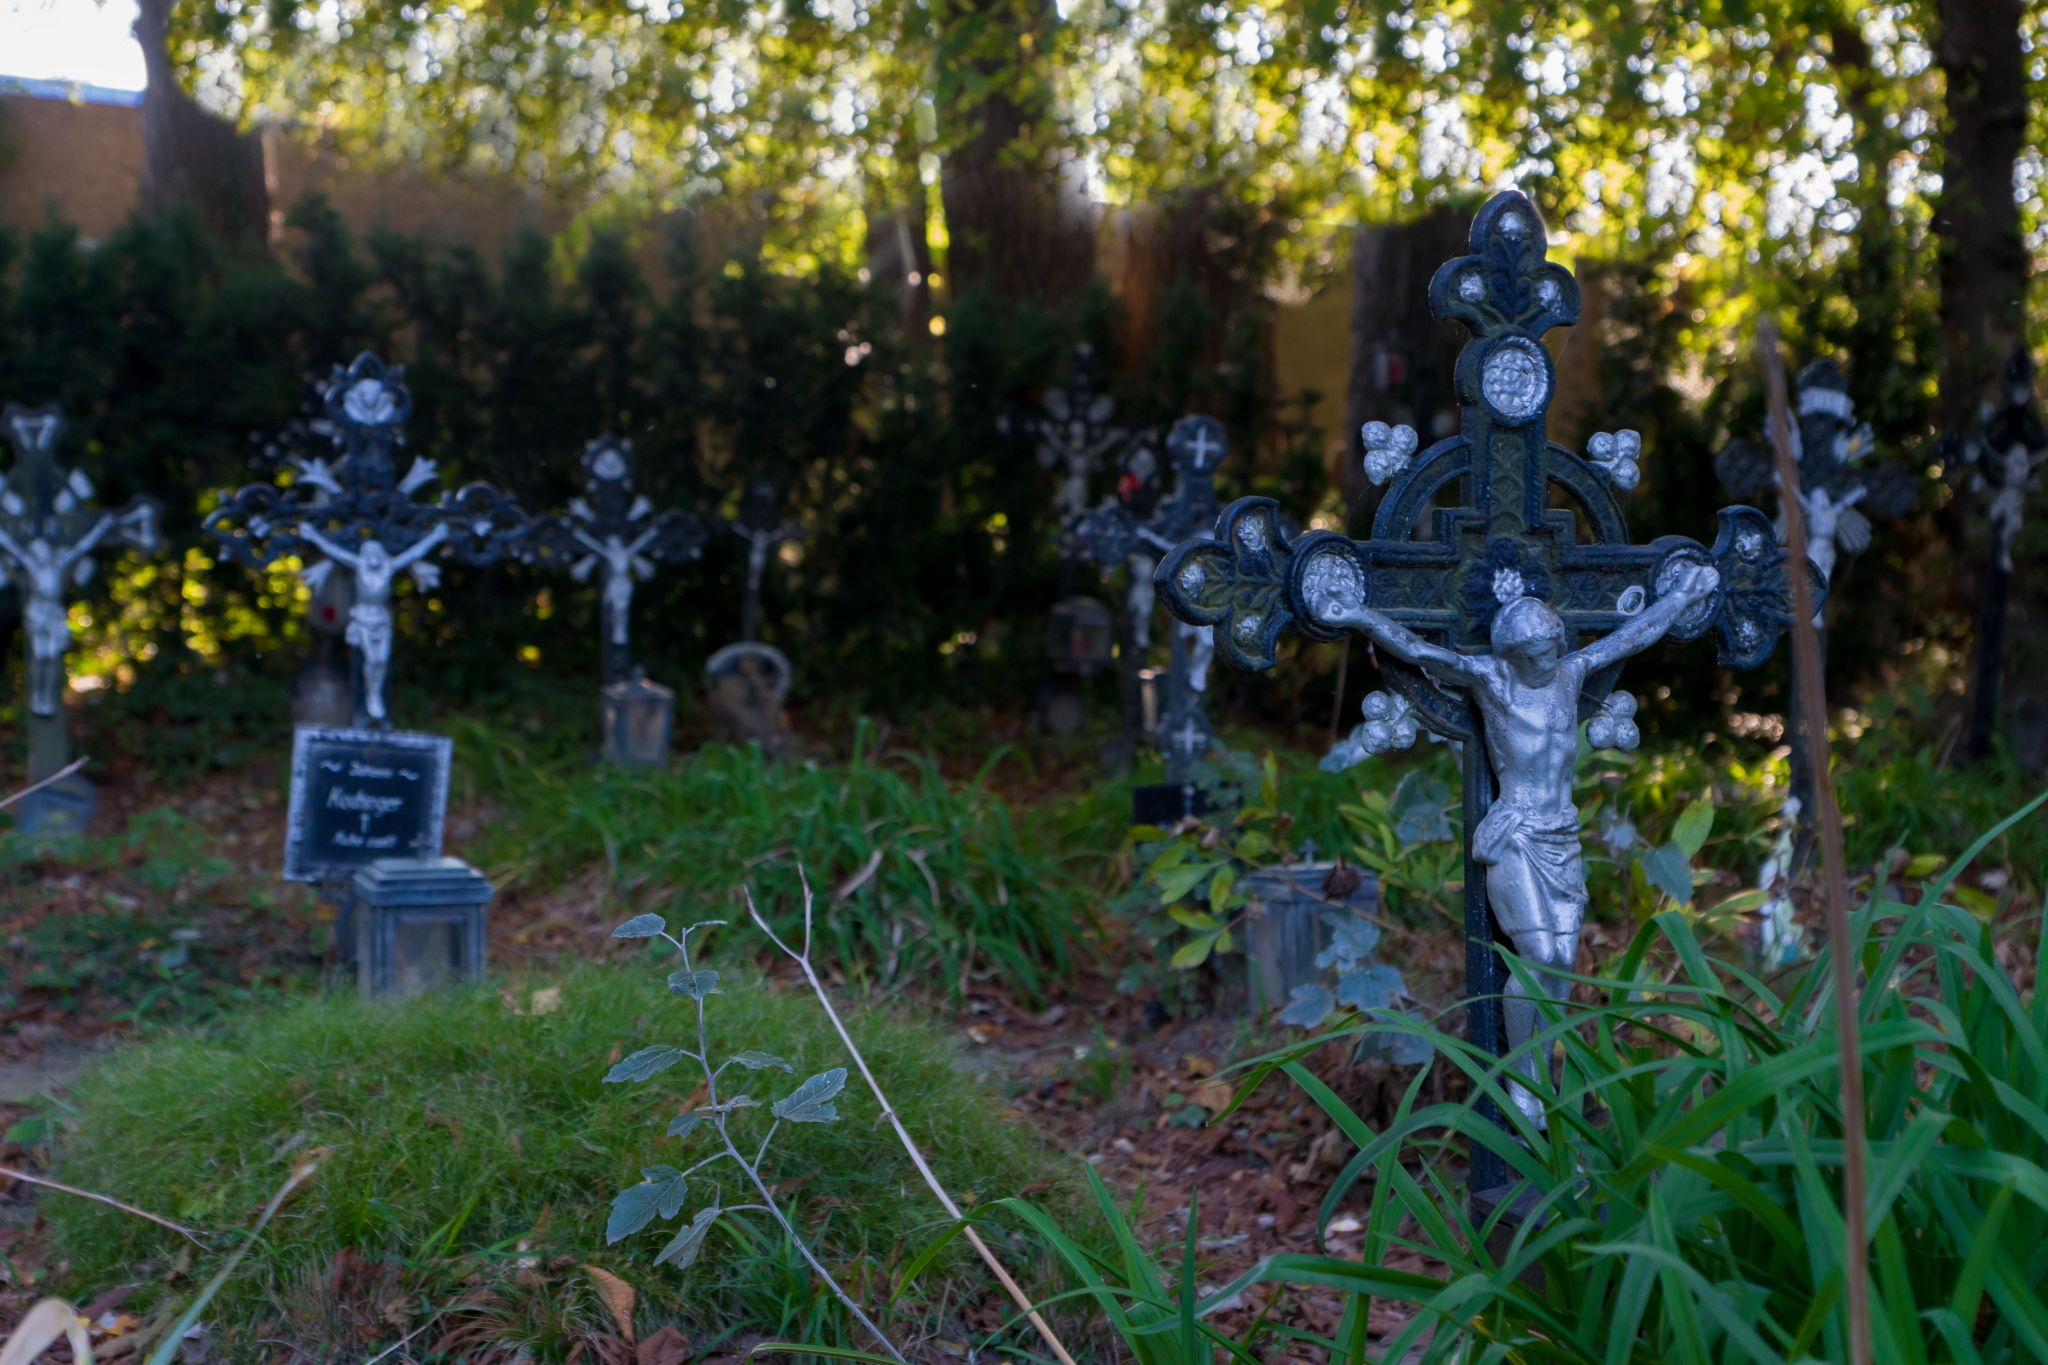 Friedhof der Namenlosen // Cemetery of the Nameless, Austria